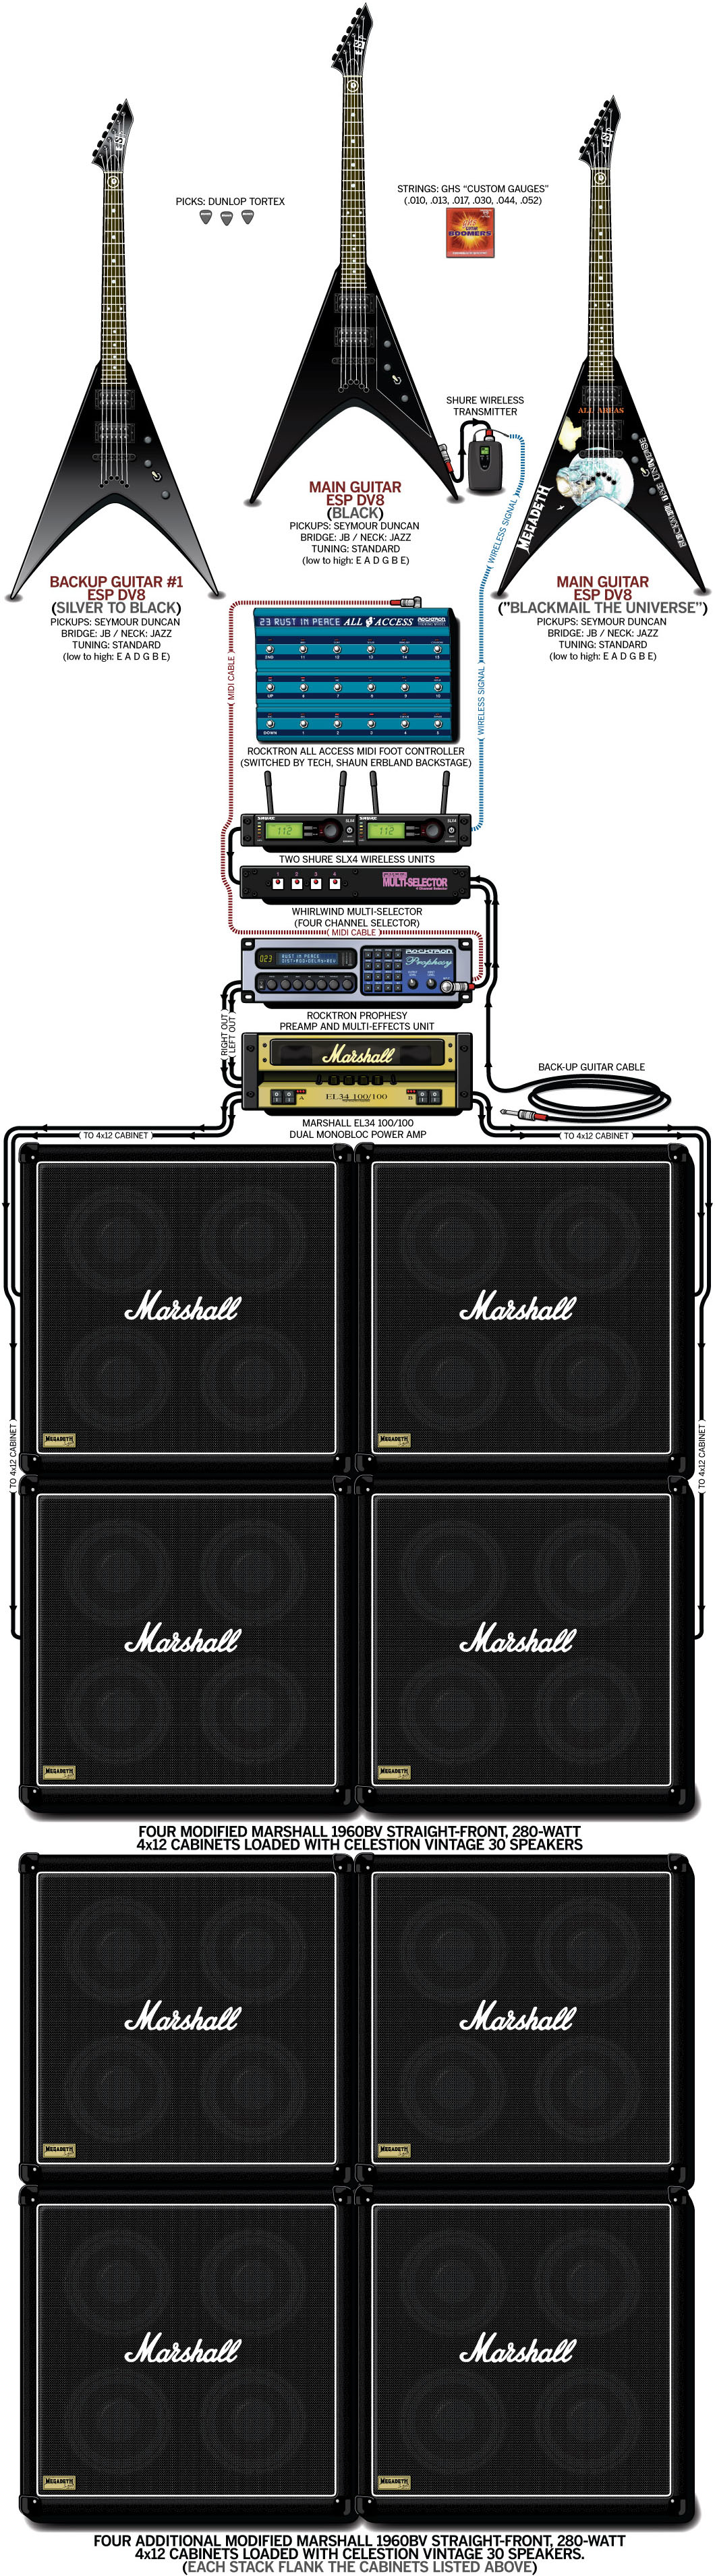 Dave Mustaine Guitar Gear & Rig – Megadeth – 2004